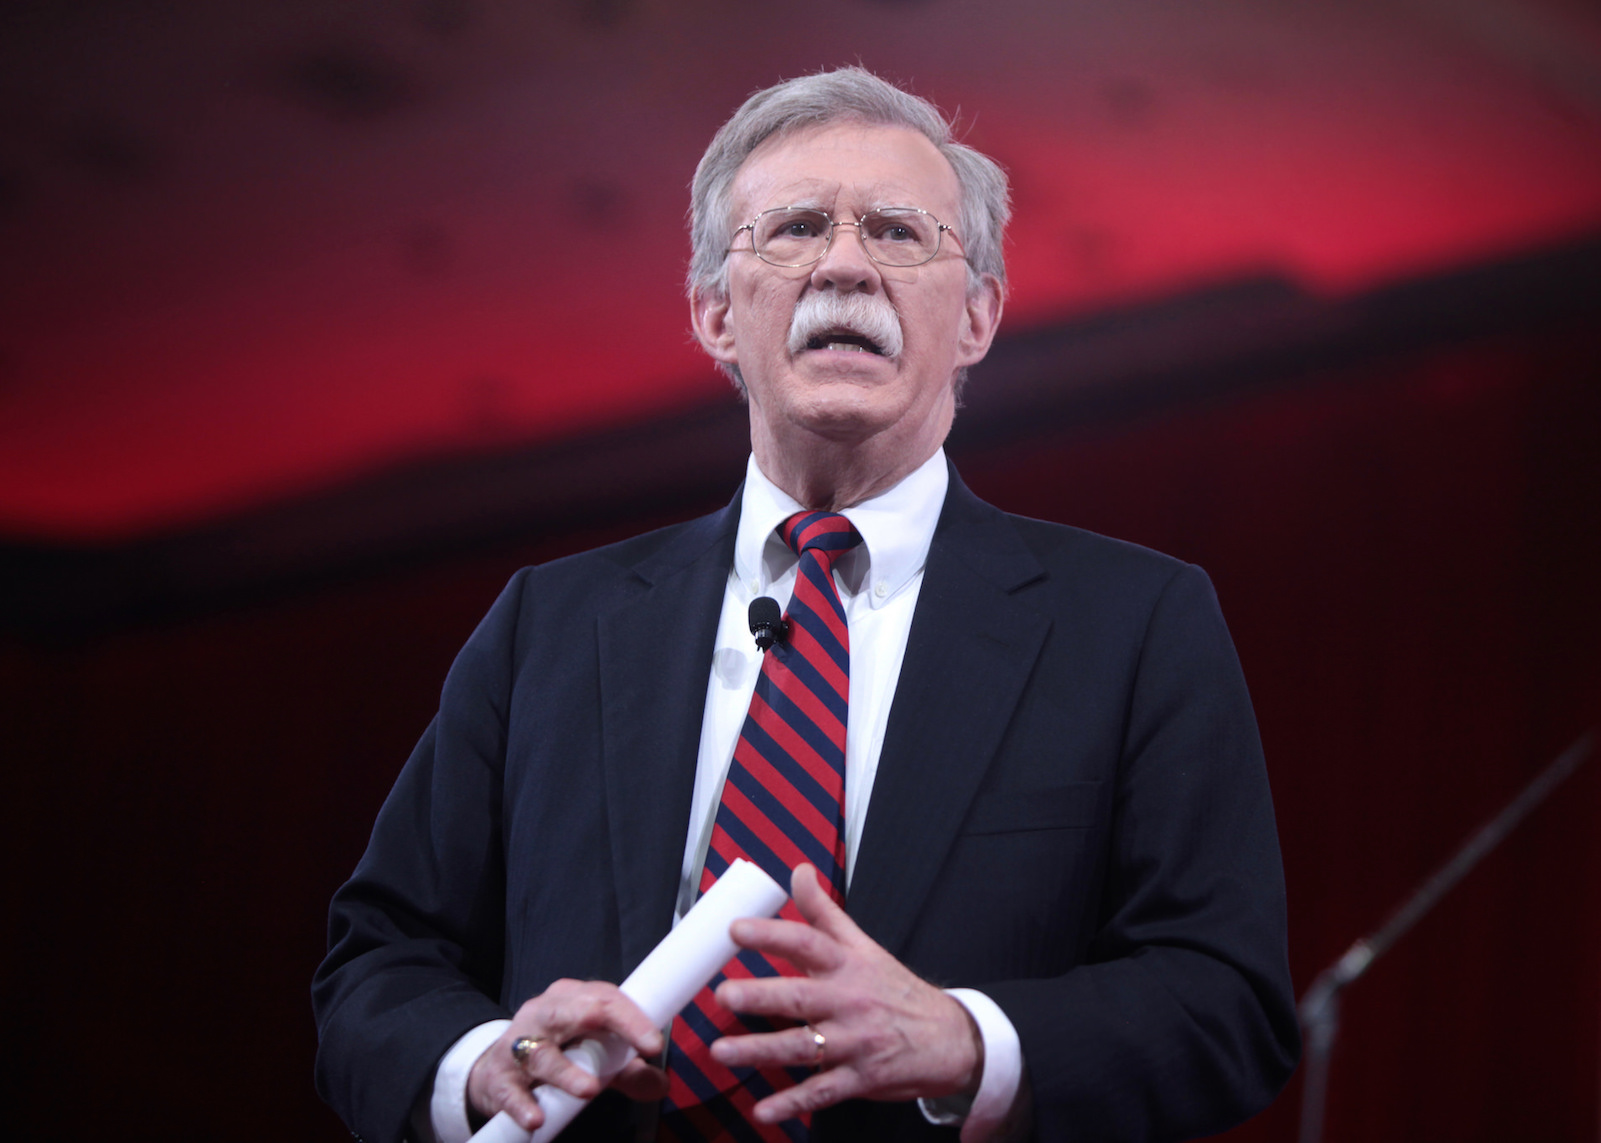 John Bolton: A Man to Fear in the Security Council